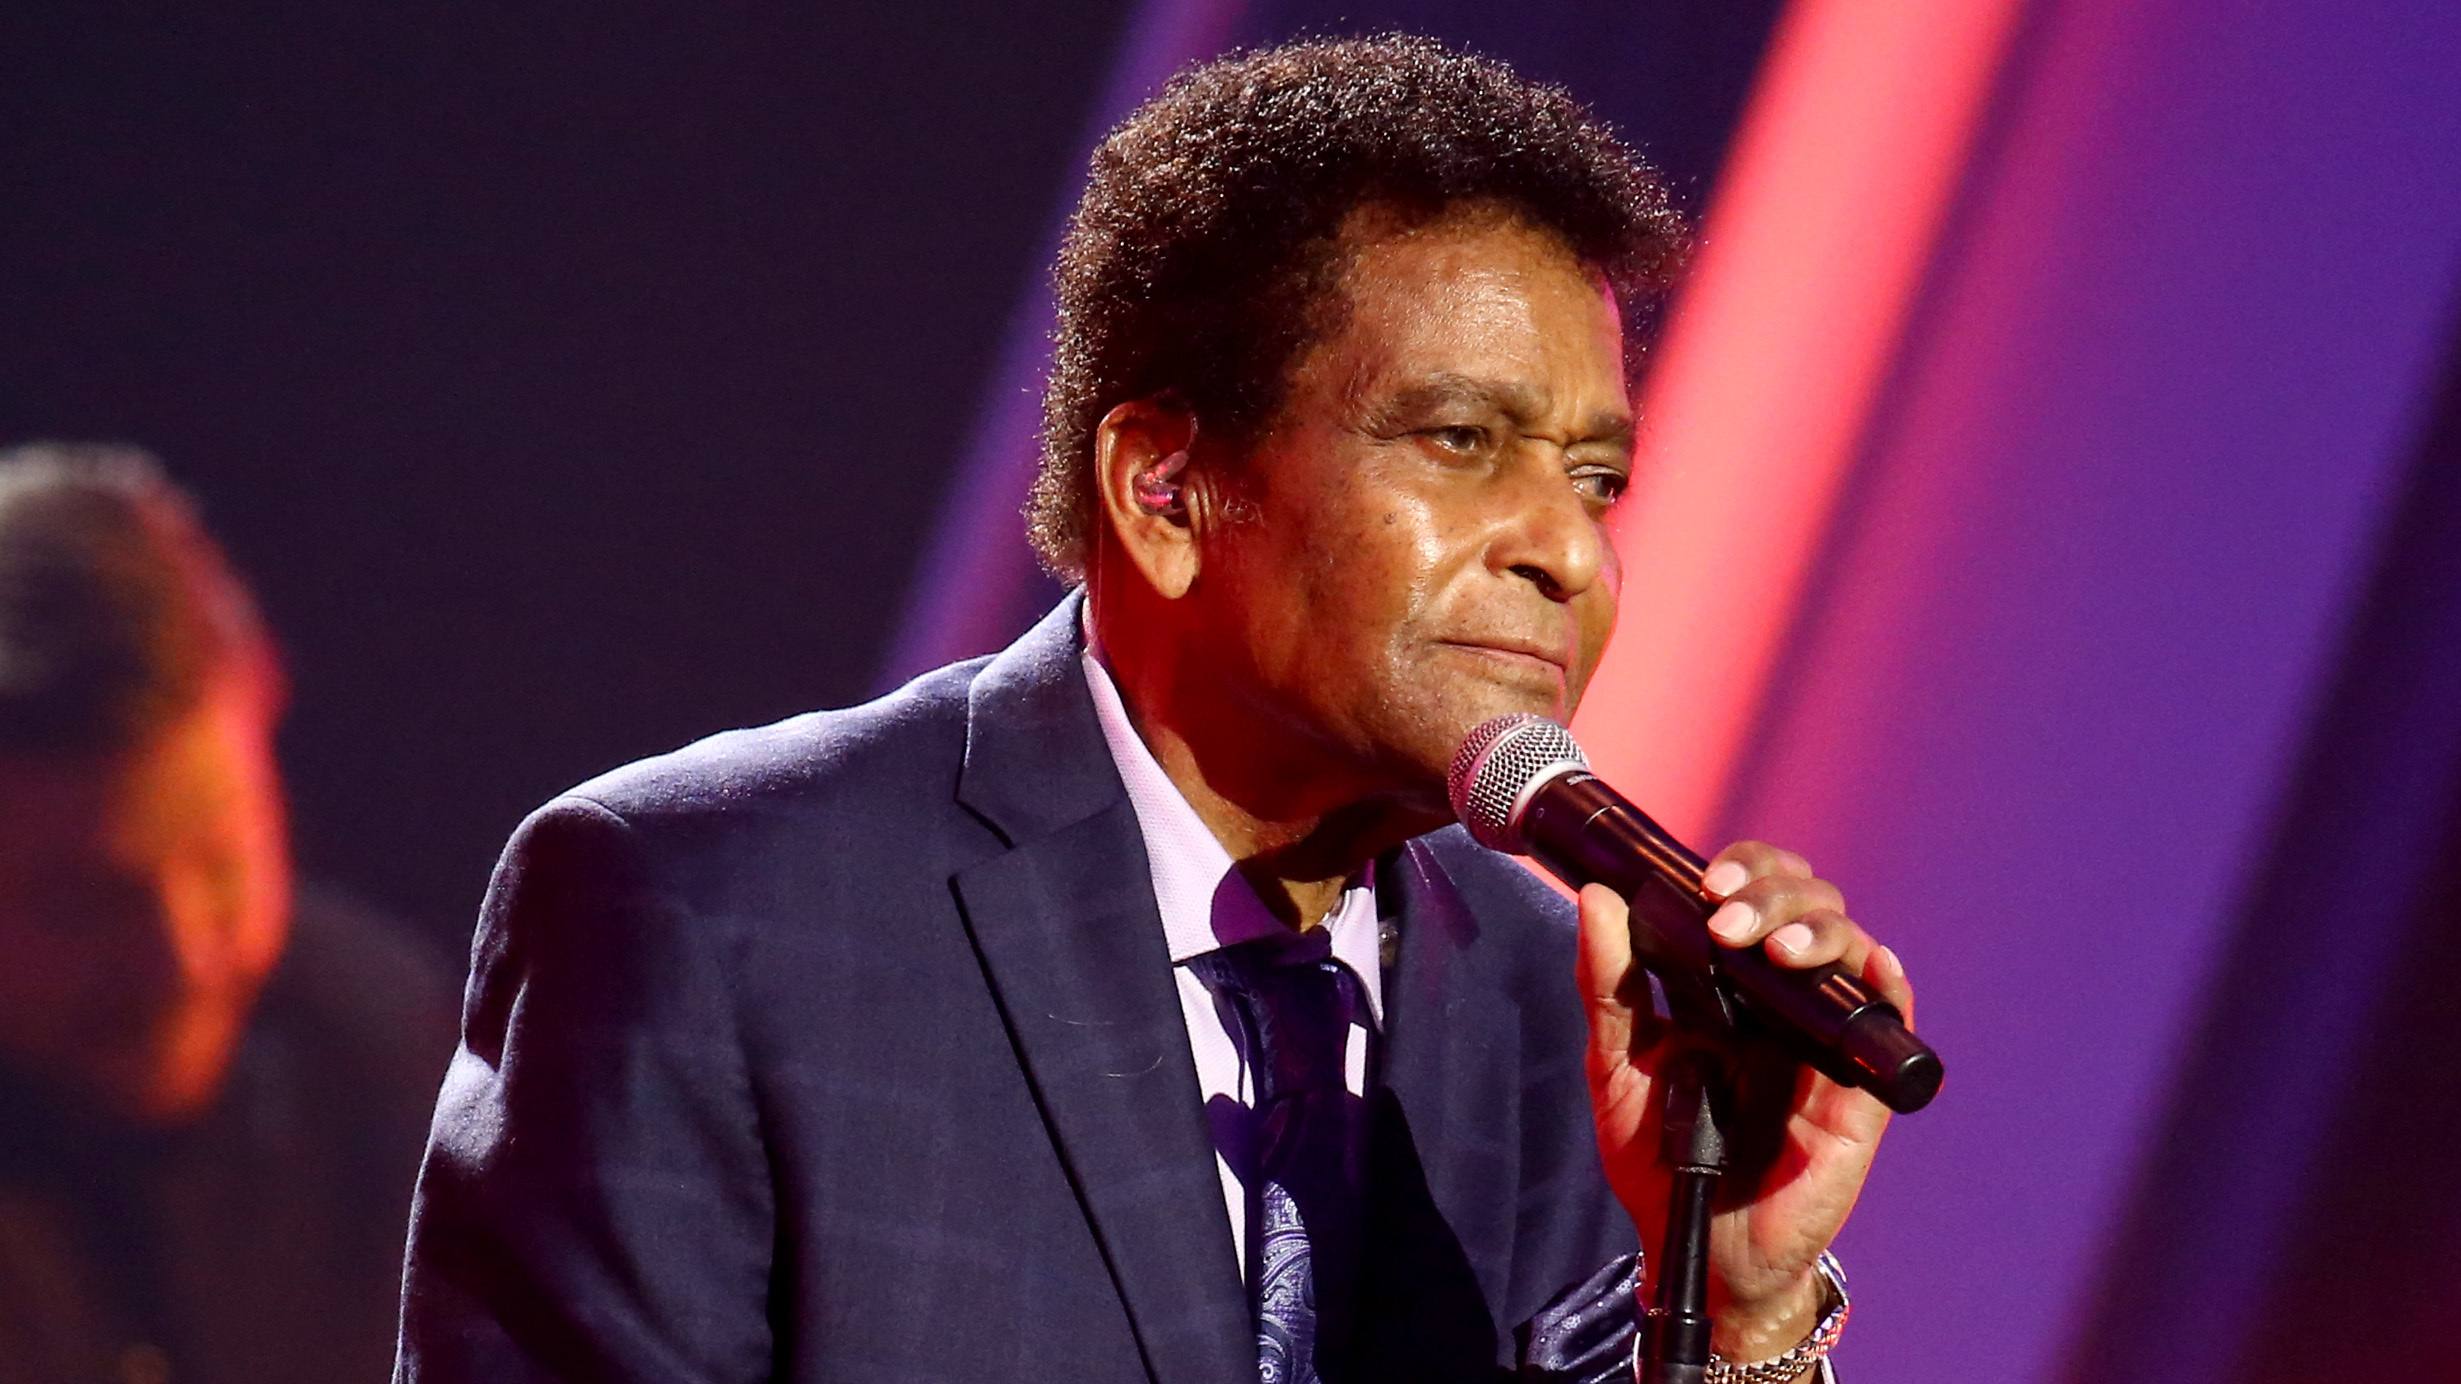 Country music legend Charley Pride dies from COVID-19